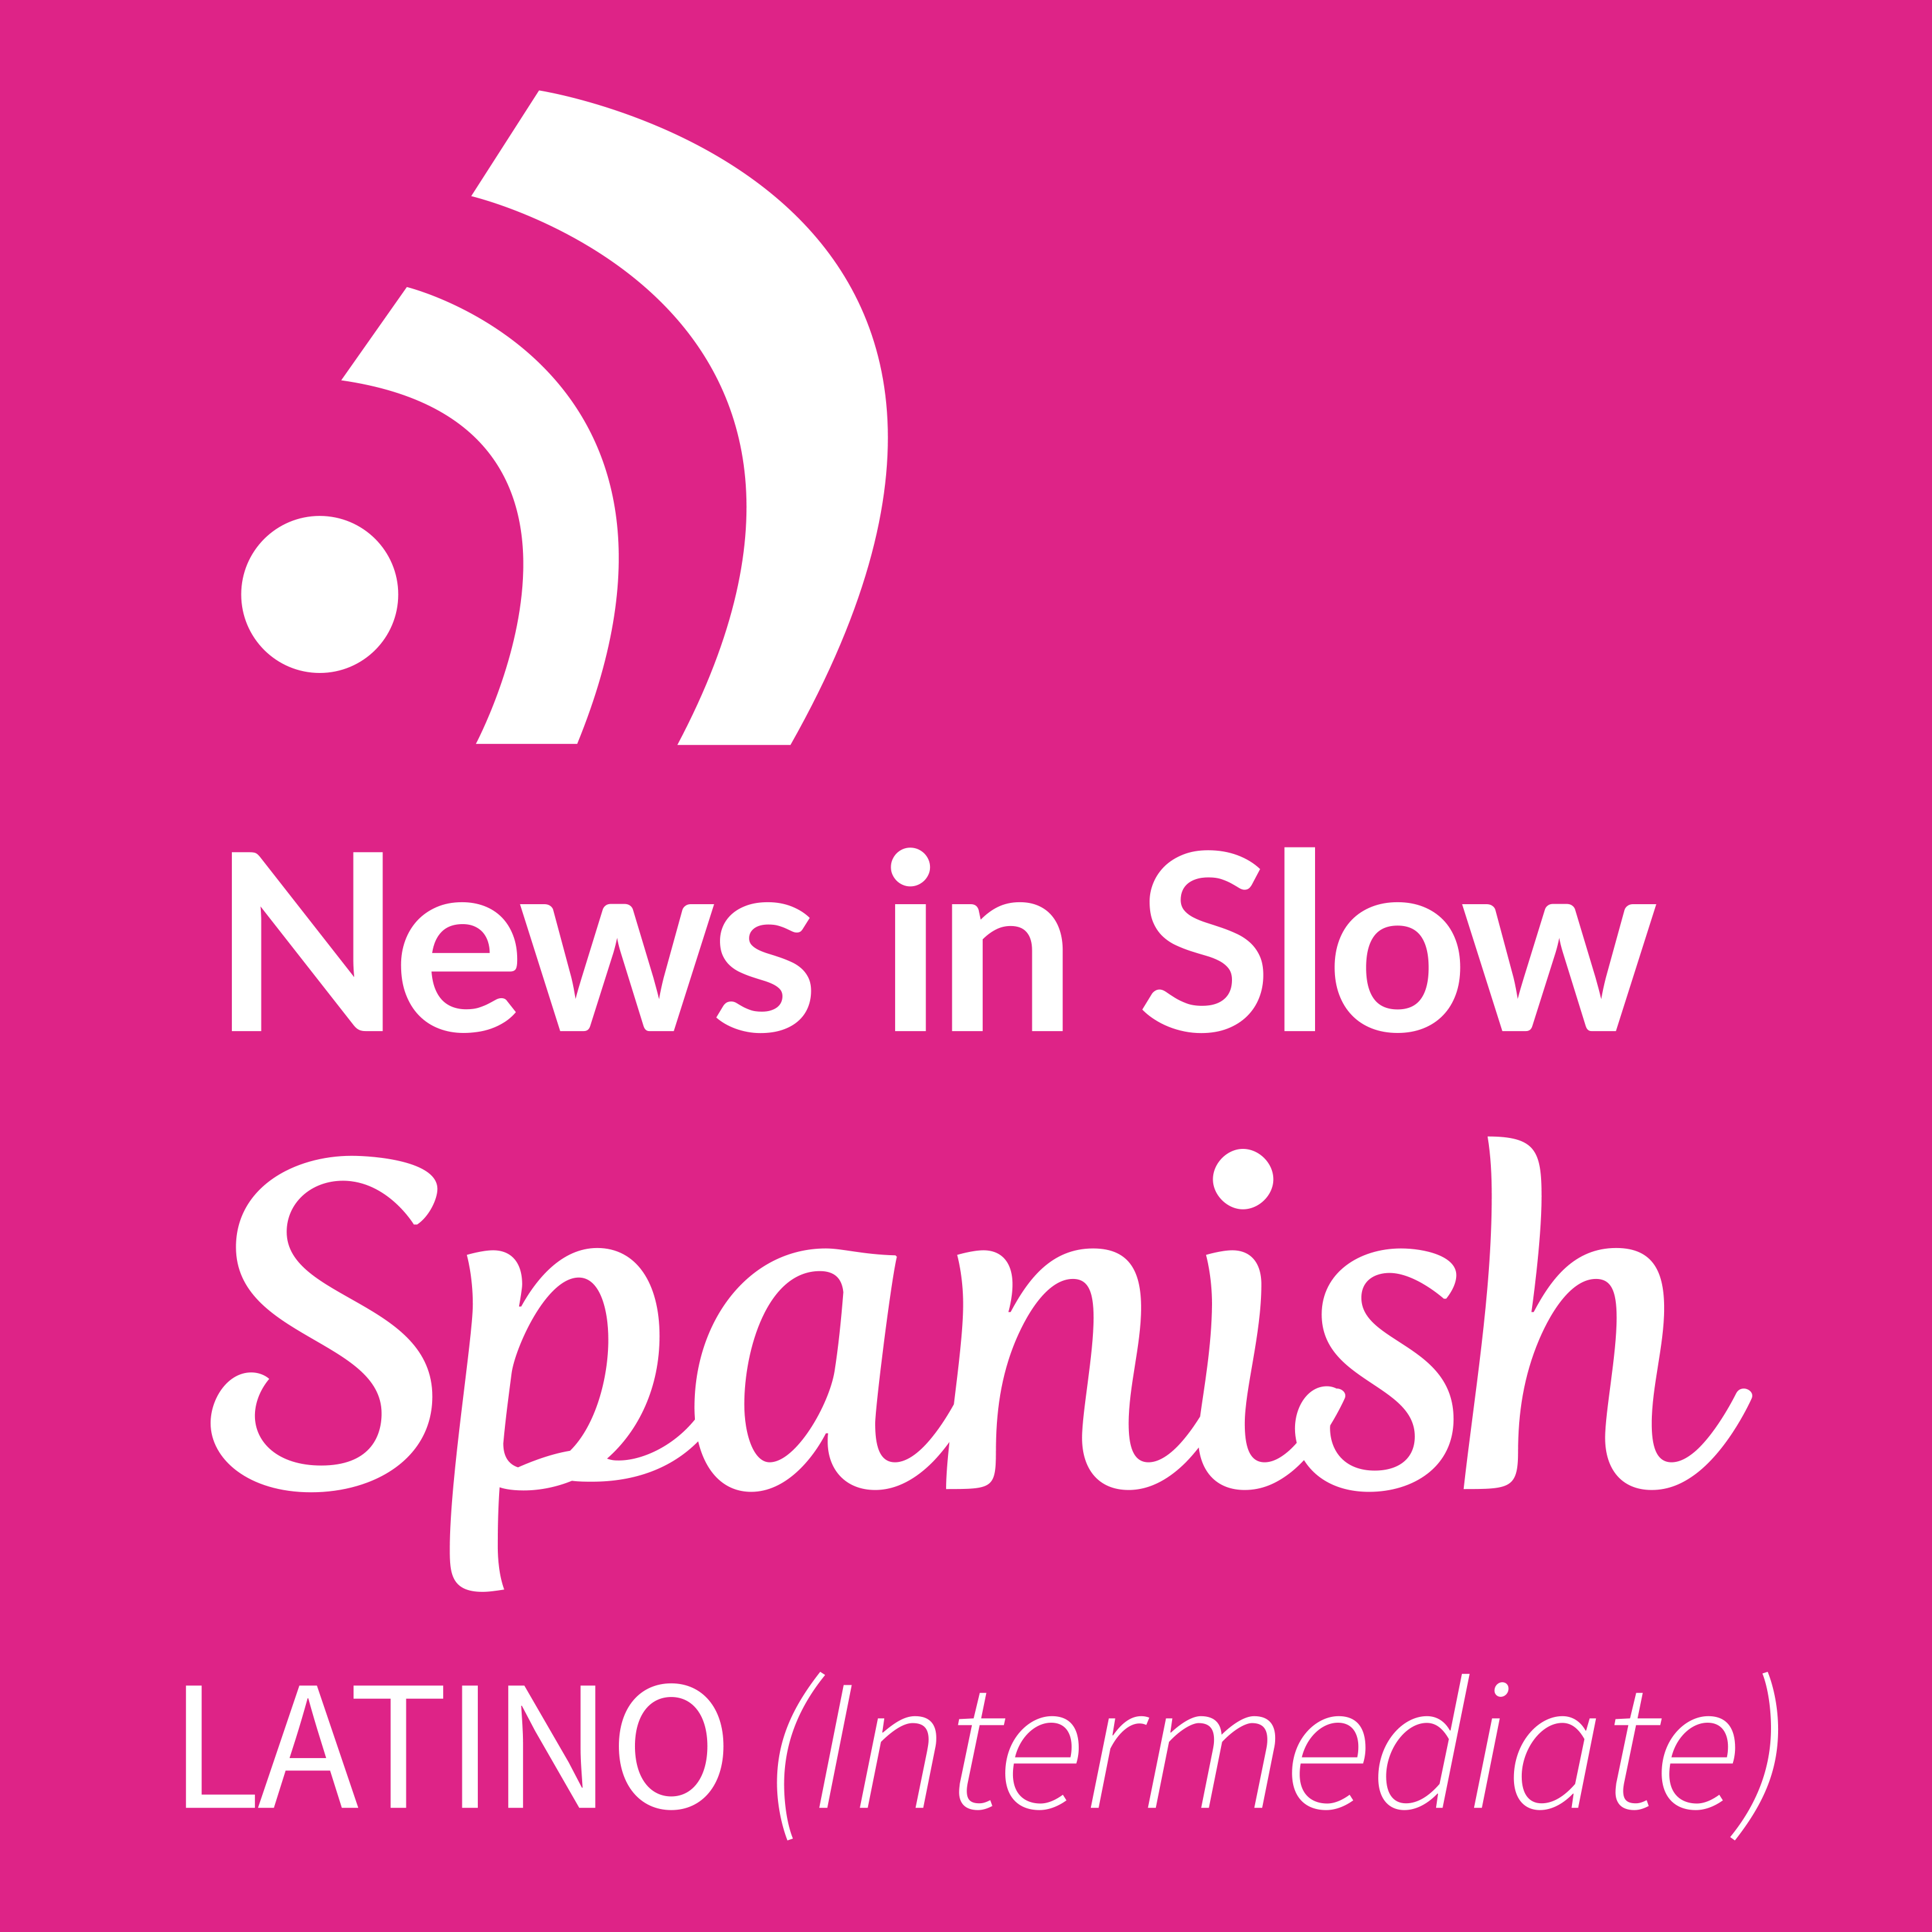 News in Slow Spanish Latino - # 131  - Language learning in the context of current events